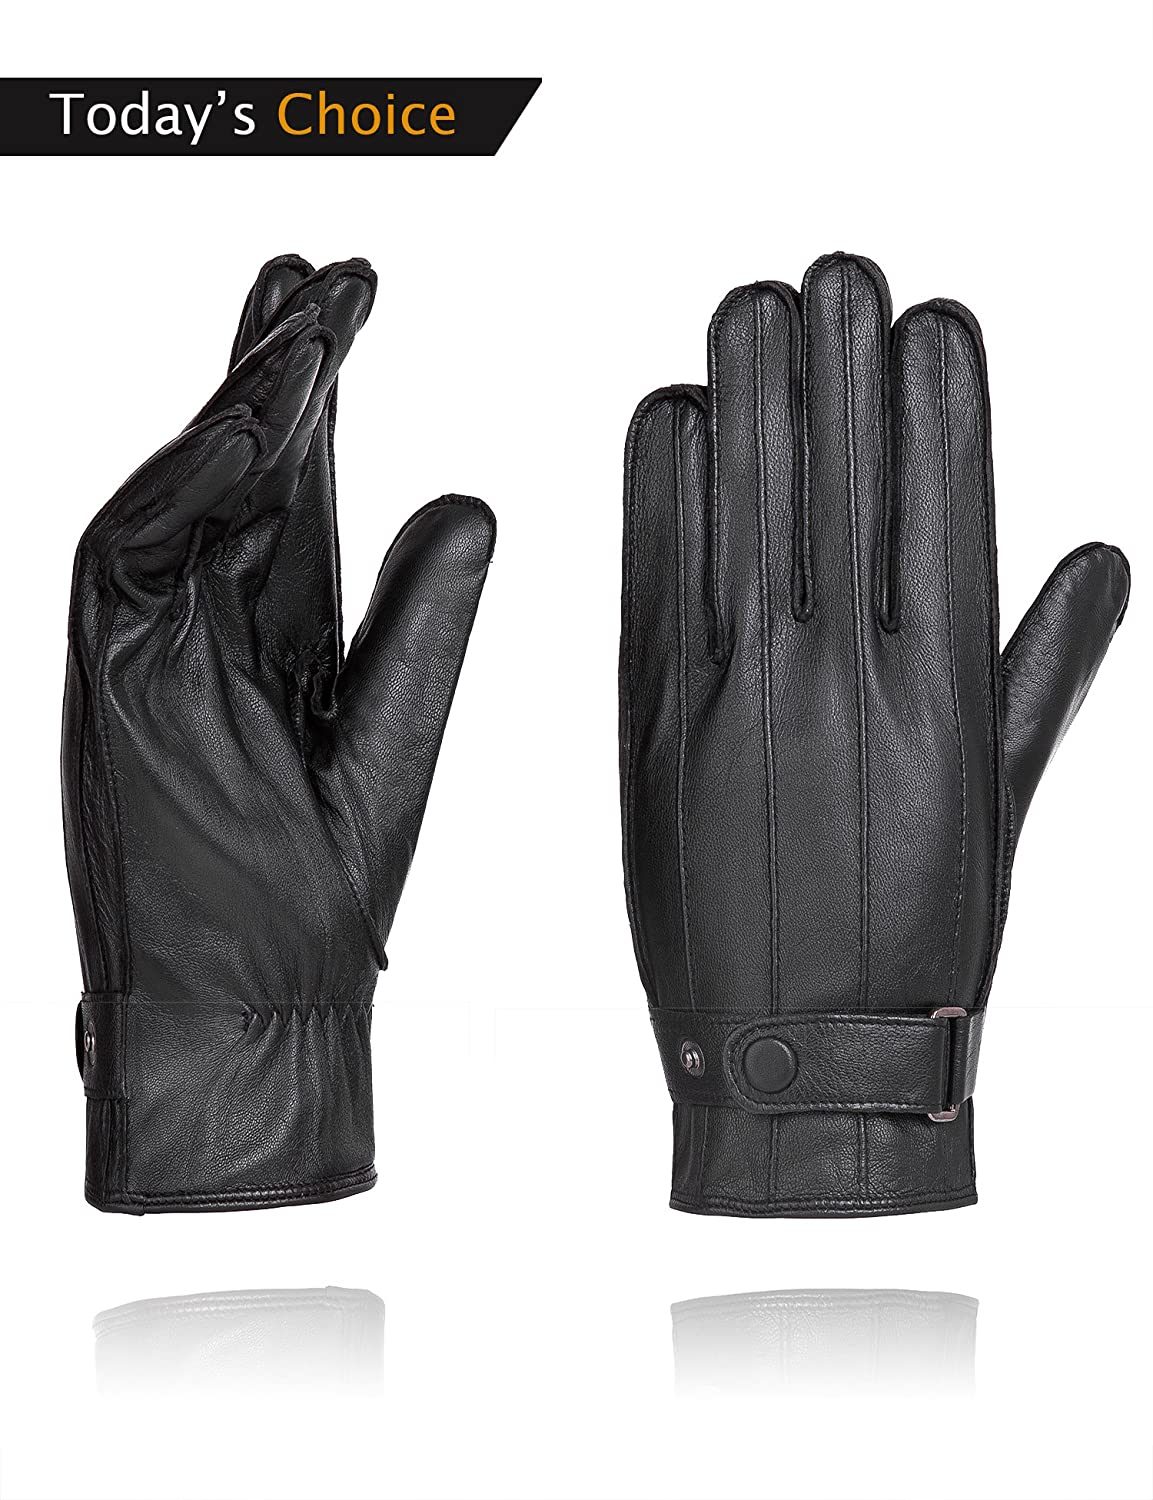 YISEVEN Mens Genuine Nappa Leather Lined Winter Gloves Black//Touchscreen,Black,8.5